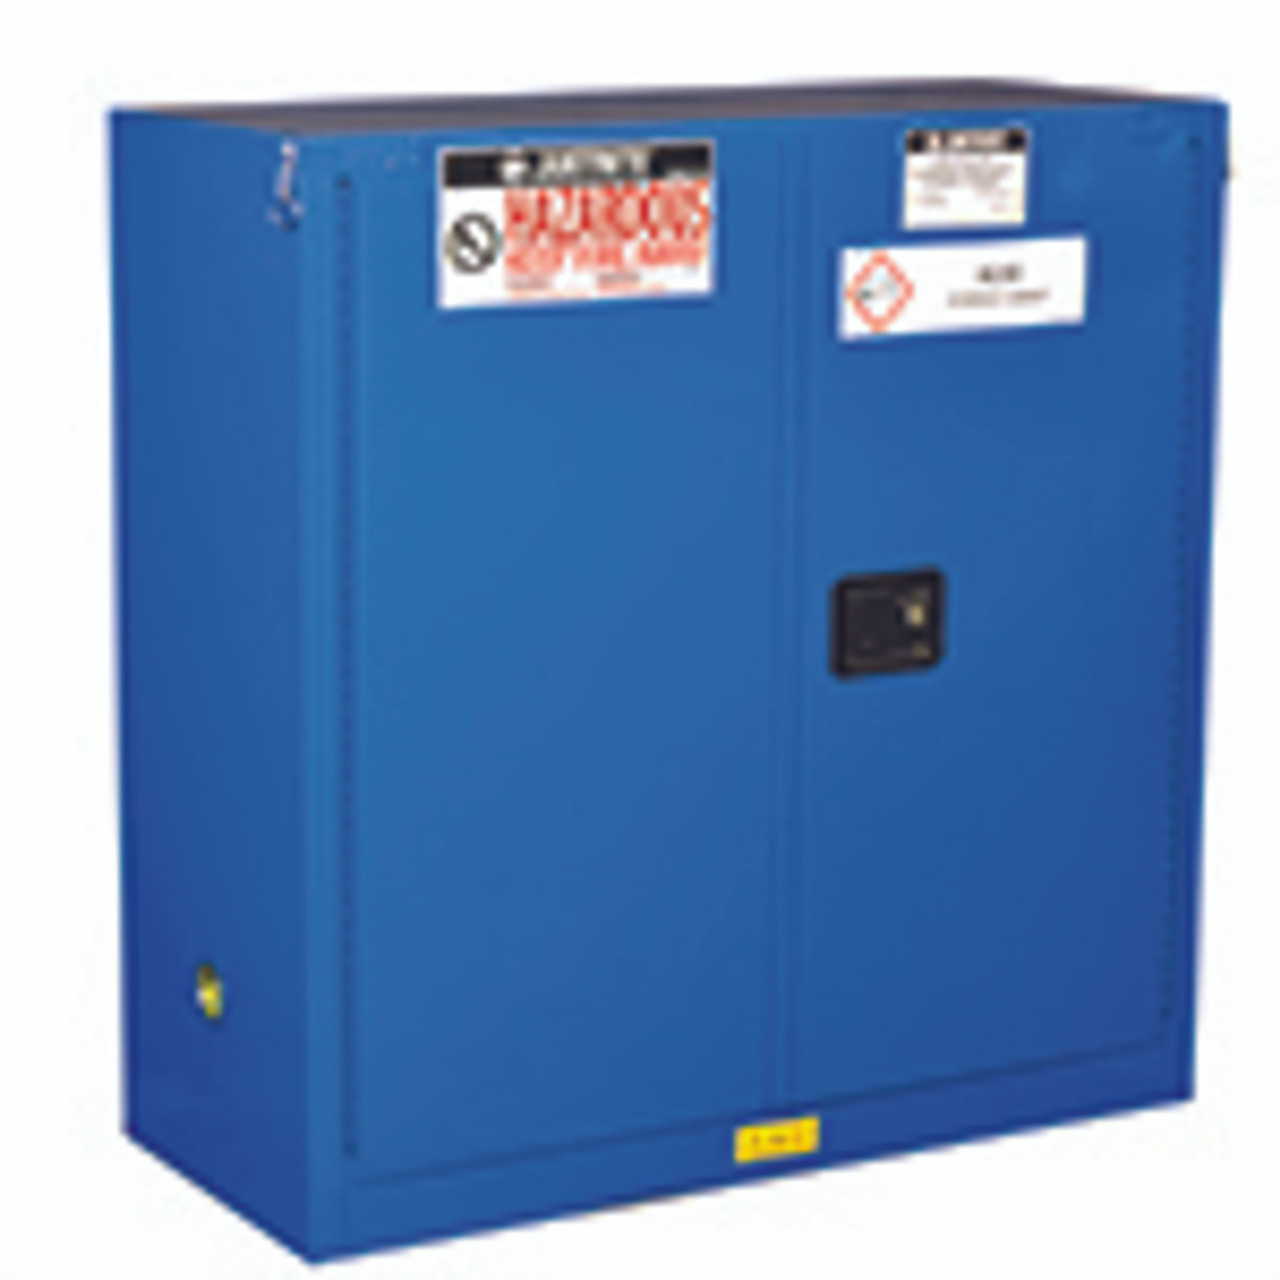 JUSTRITE Hazardous Material Safety Cabinets